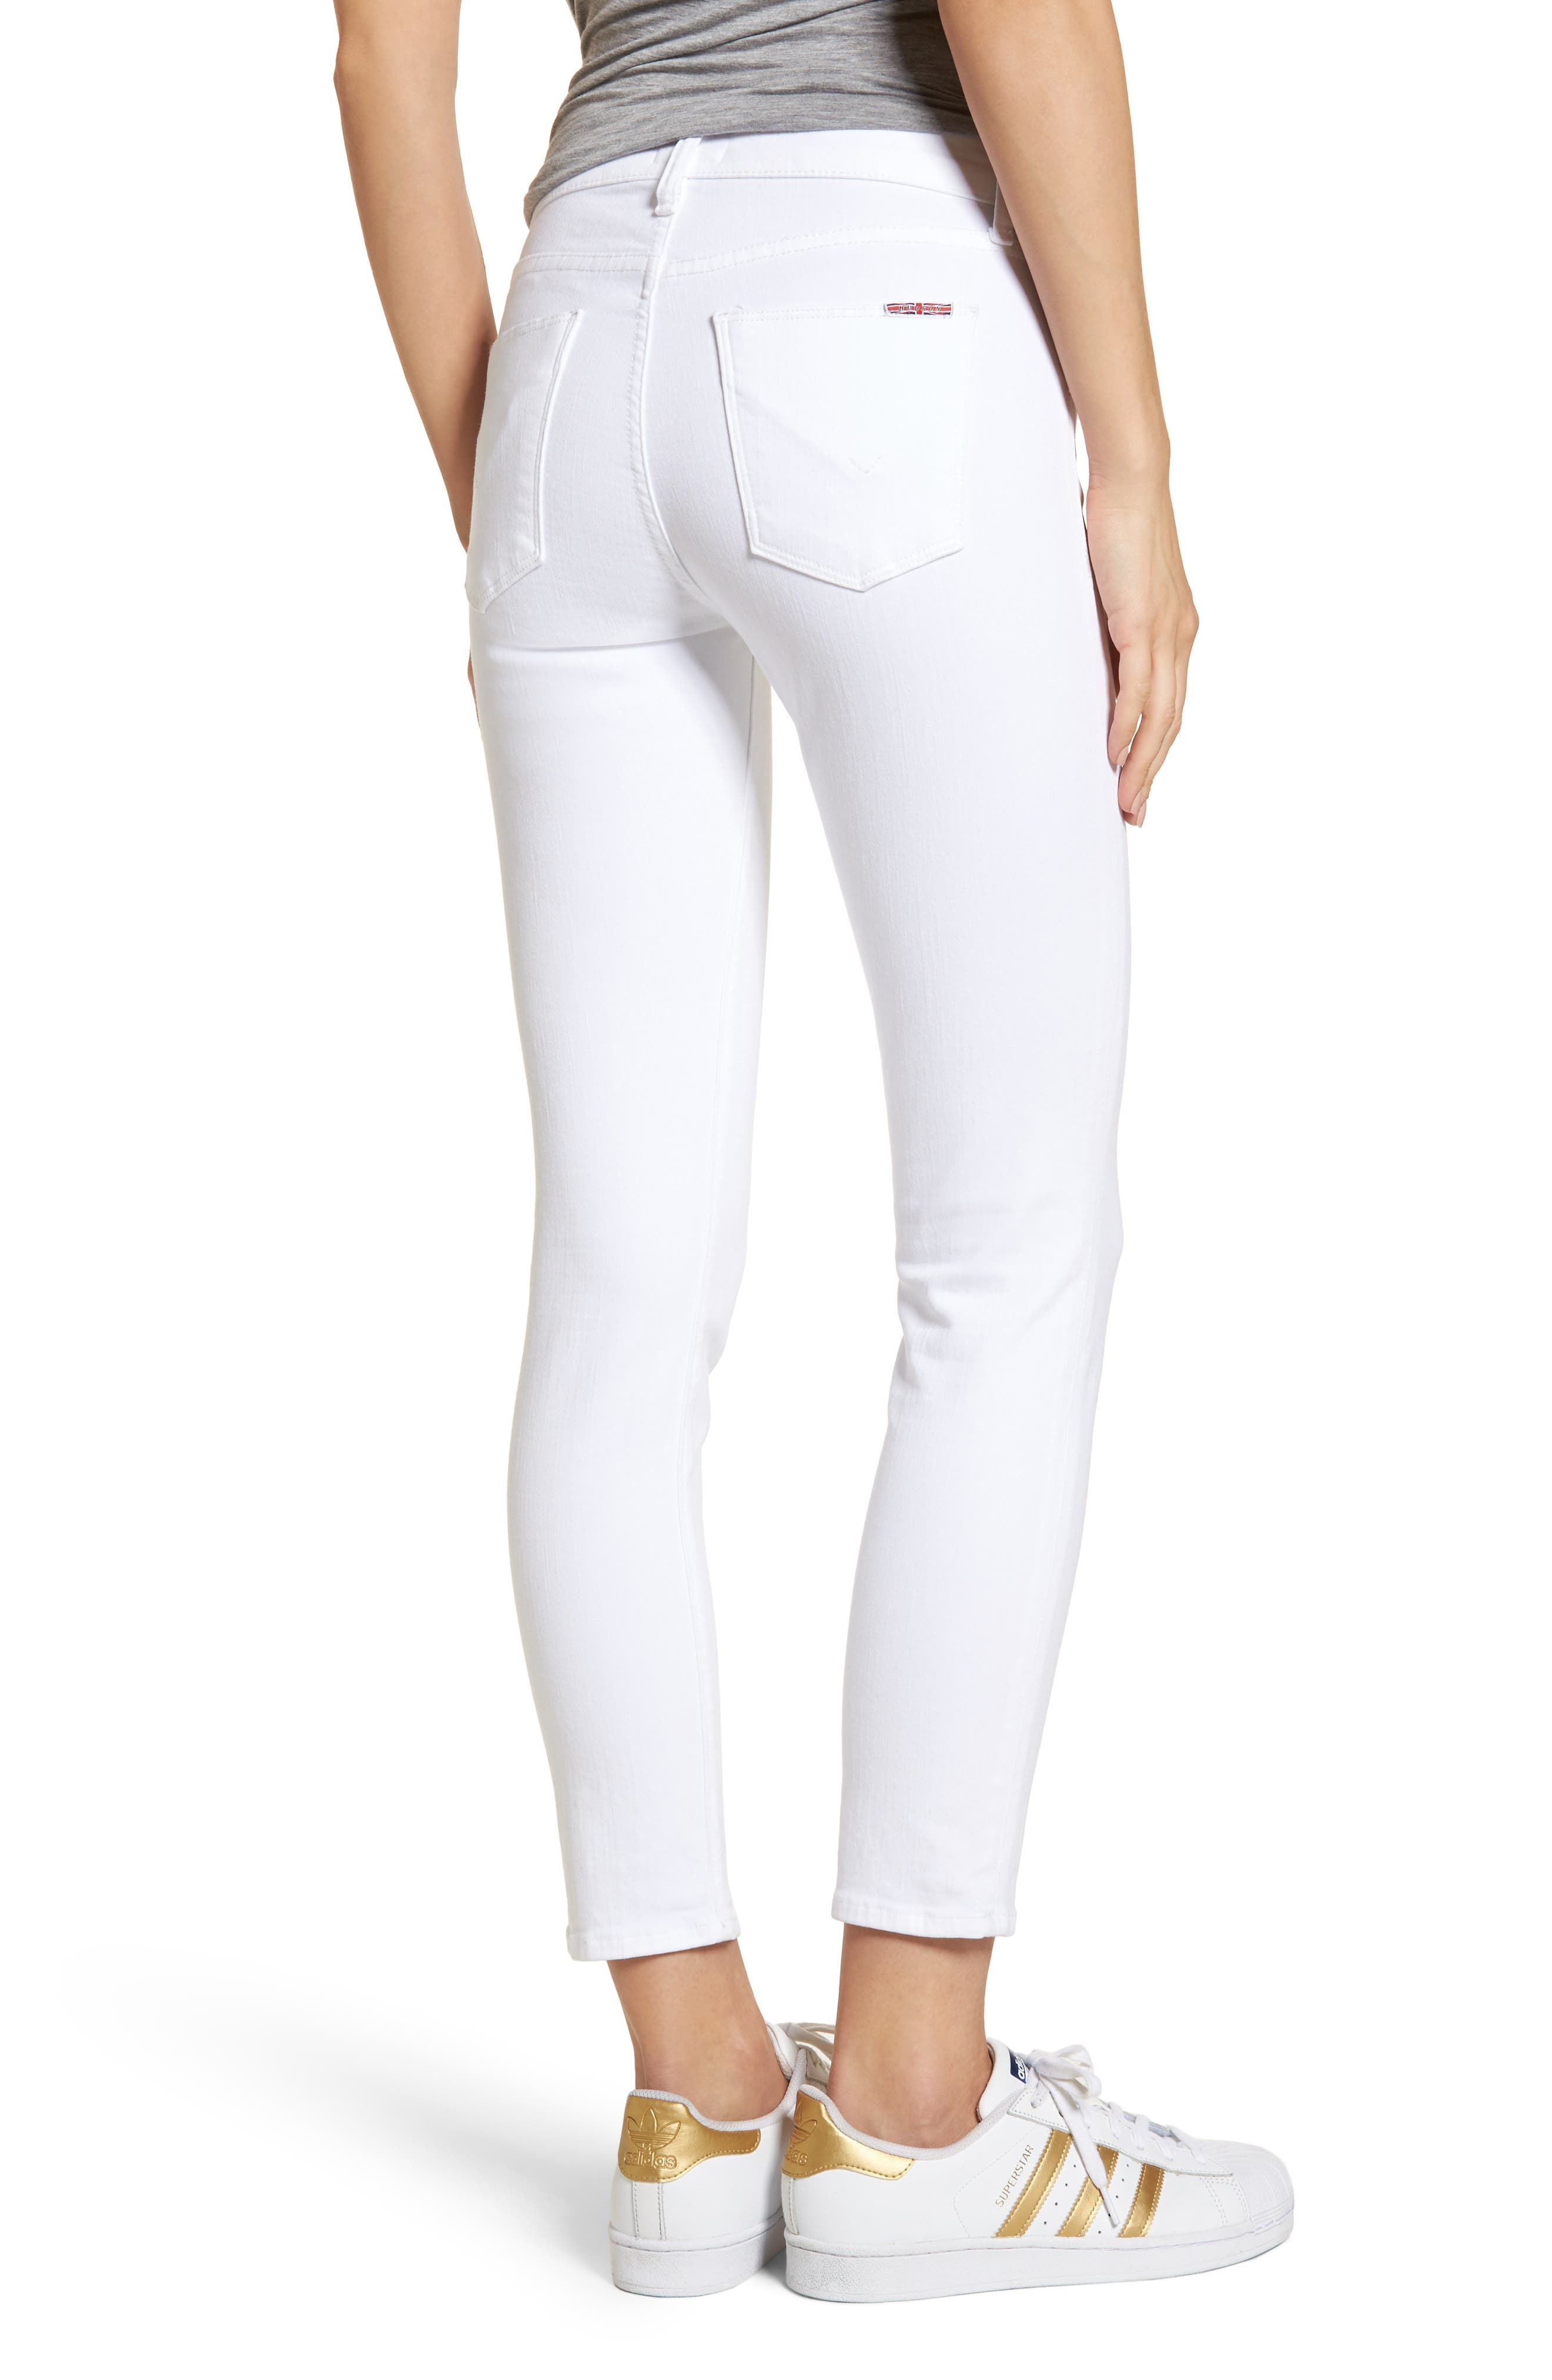 Tally Ankle Skinny Jeans,                             Alternate thumbnail 2, color,                             Optical White